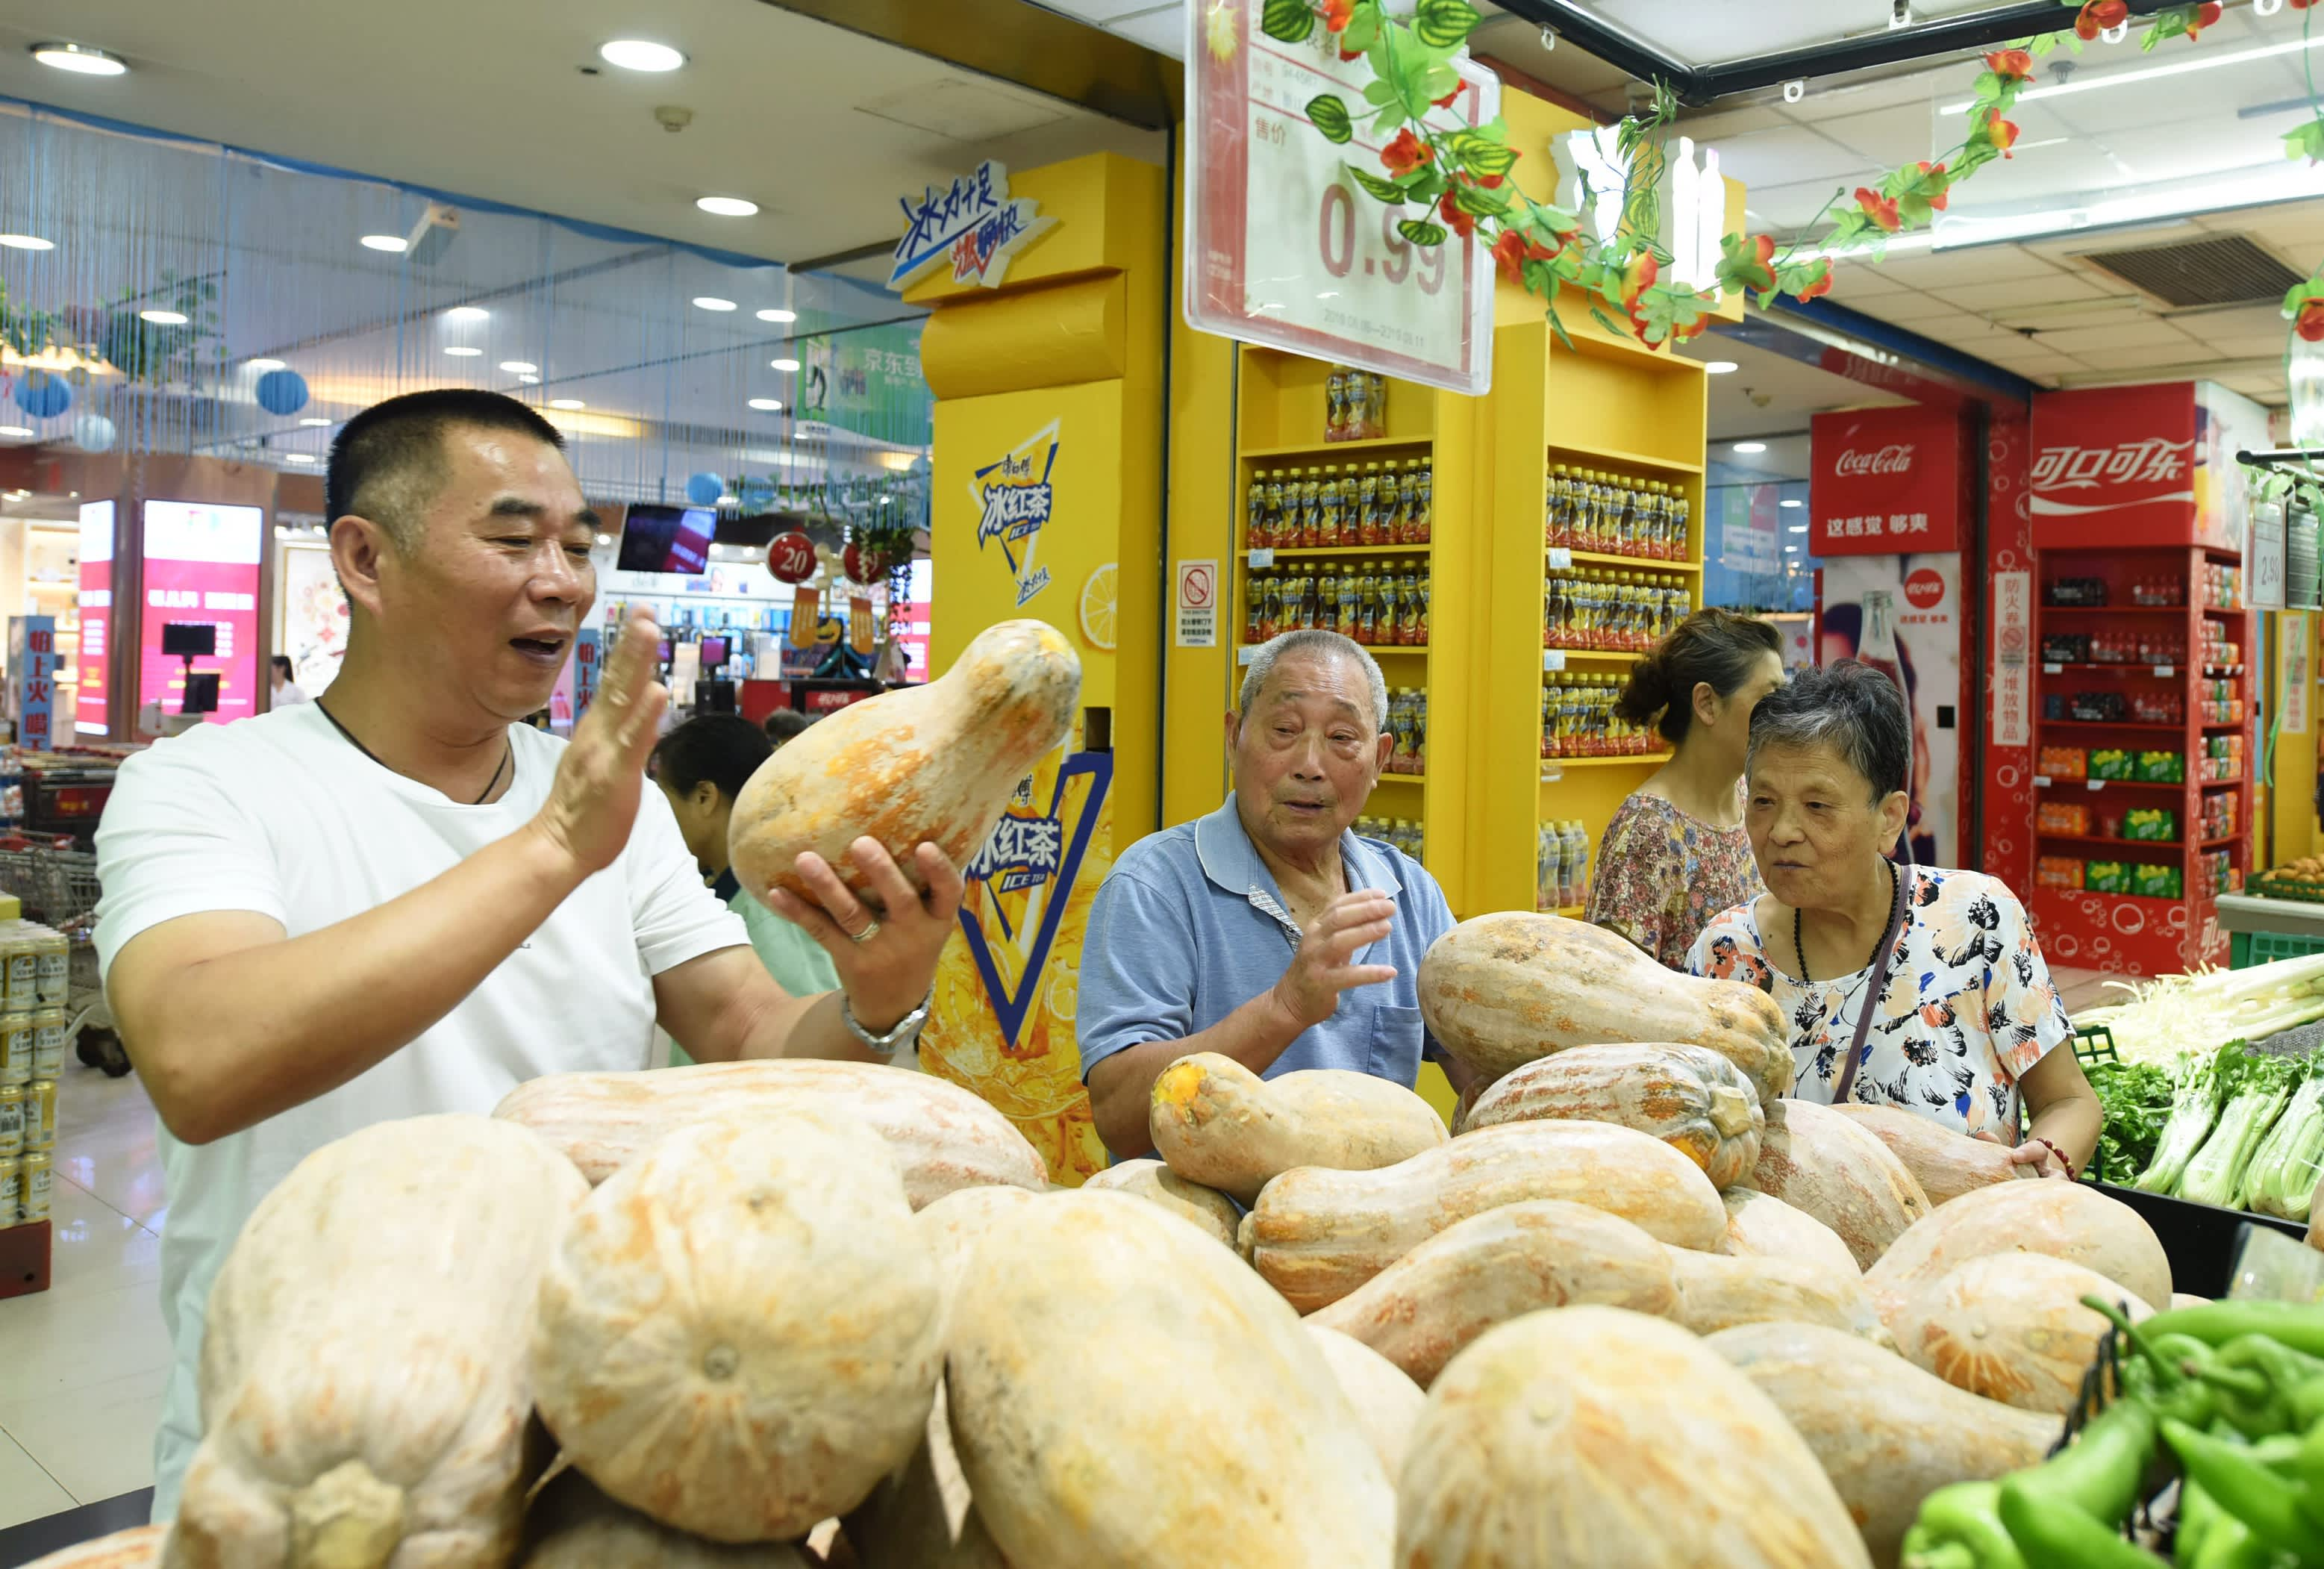 China's August producer prices shrink the most in 3 years